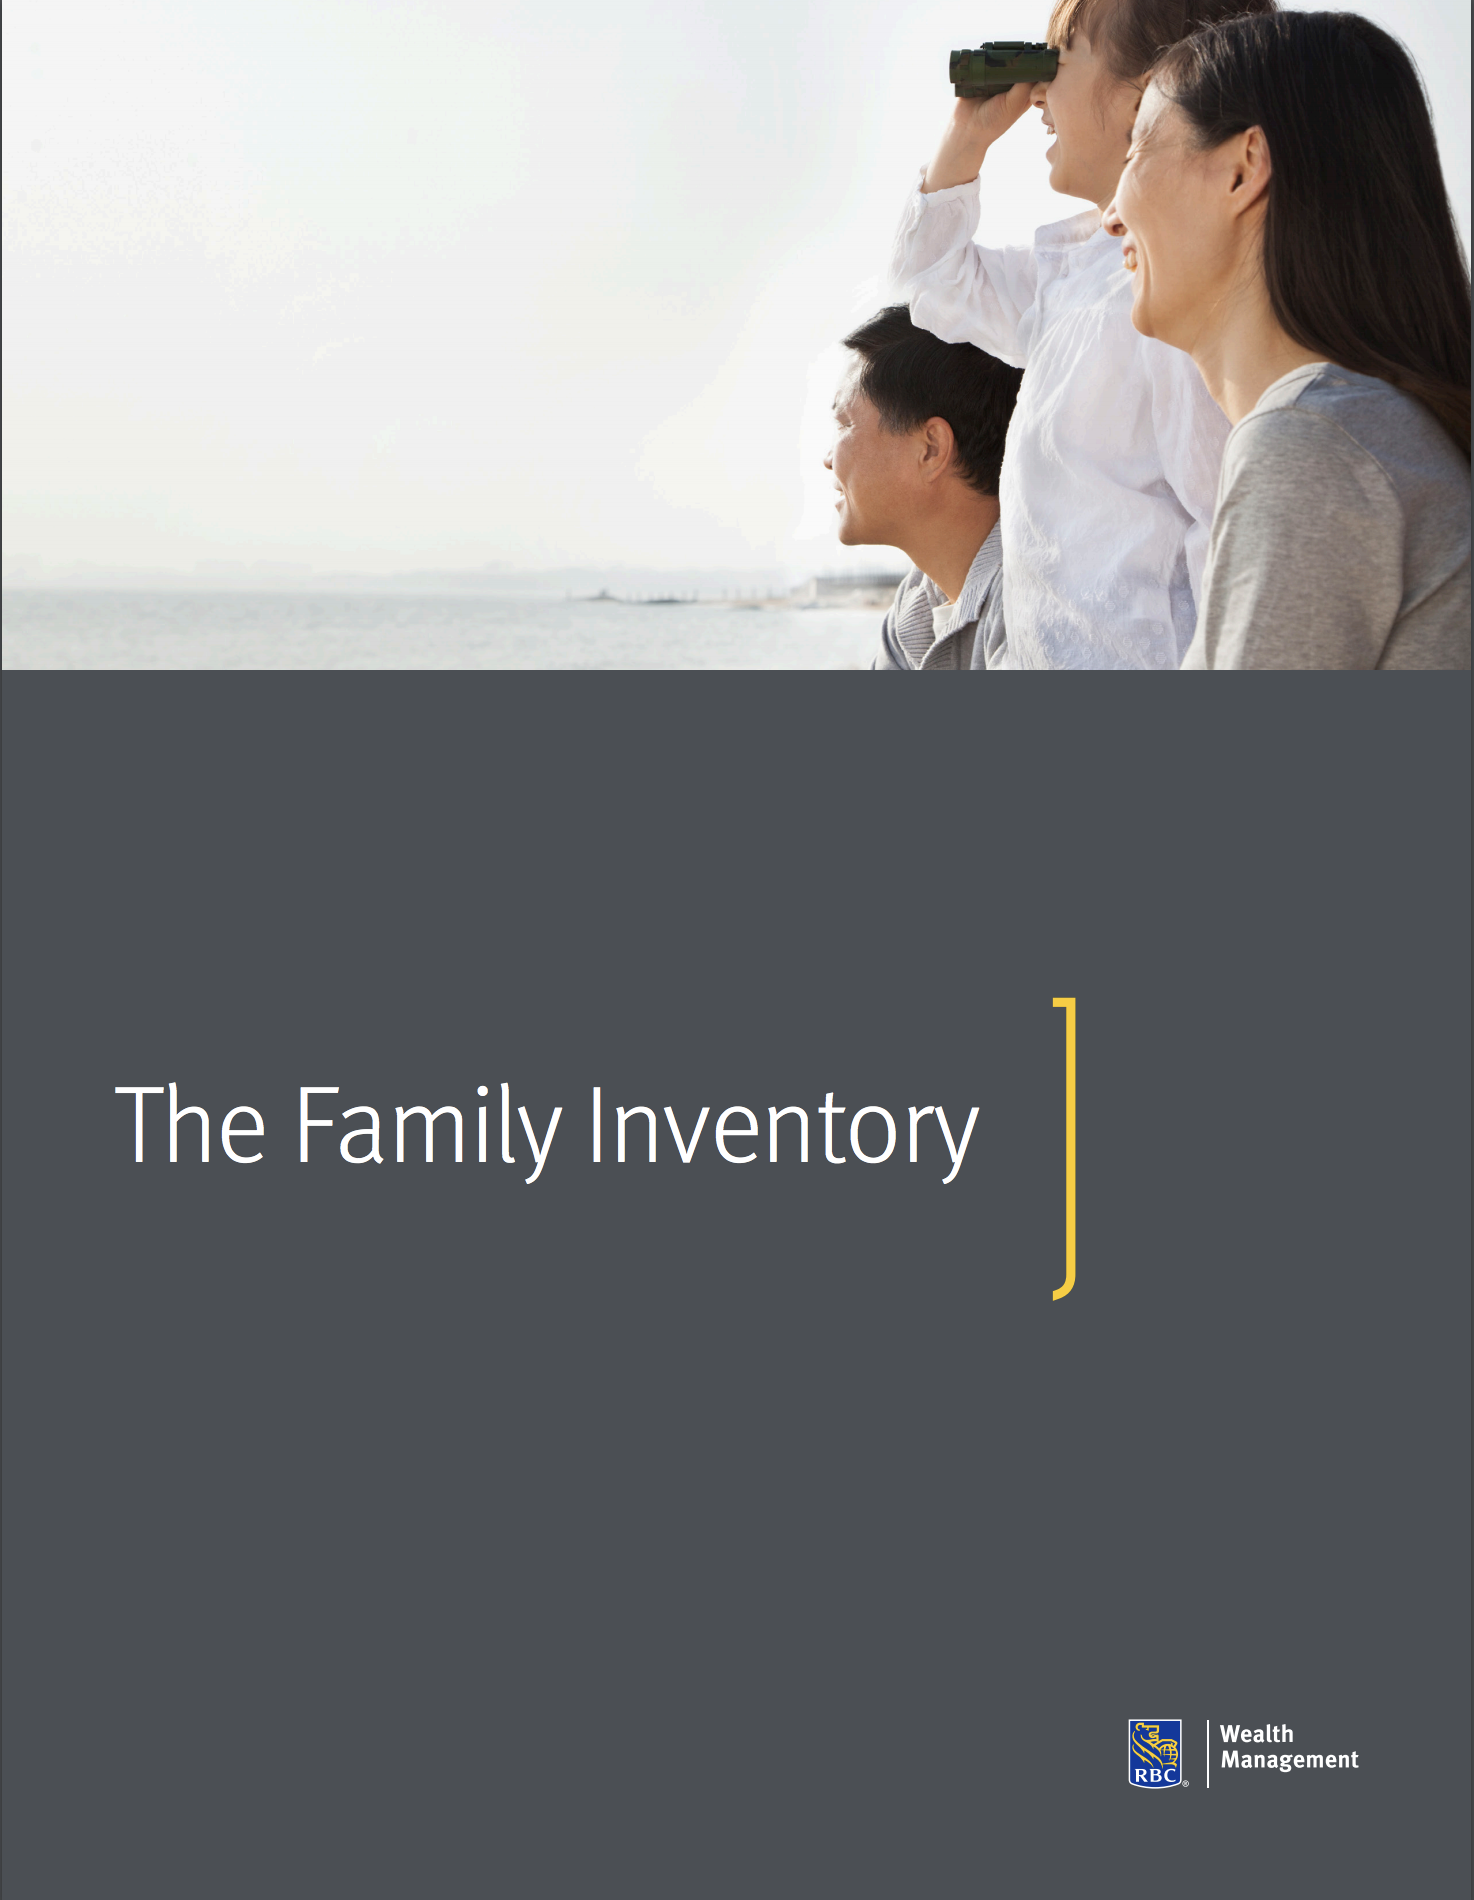 The Family Inventory